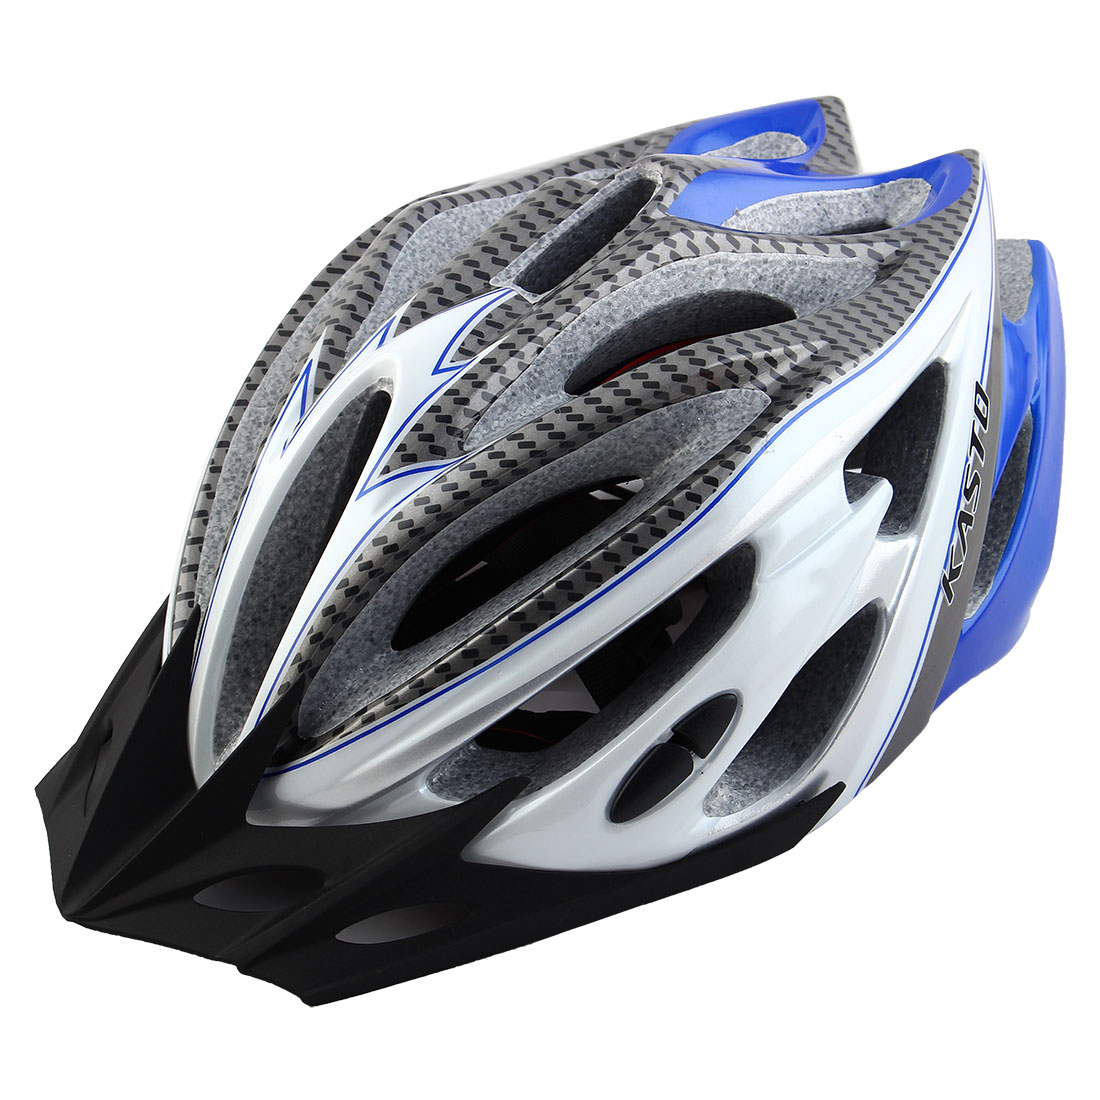 Adult 21 Holes Portable Cycling Cap Head Safety Protector Riding Hat Adjustable Biking Helmet White